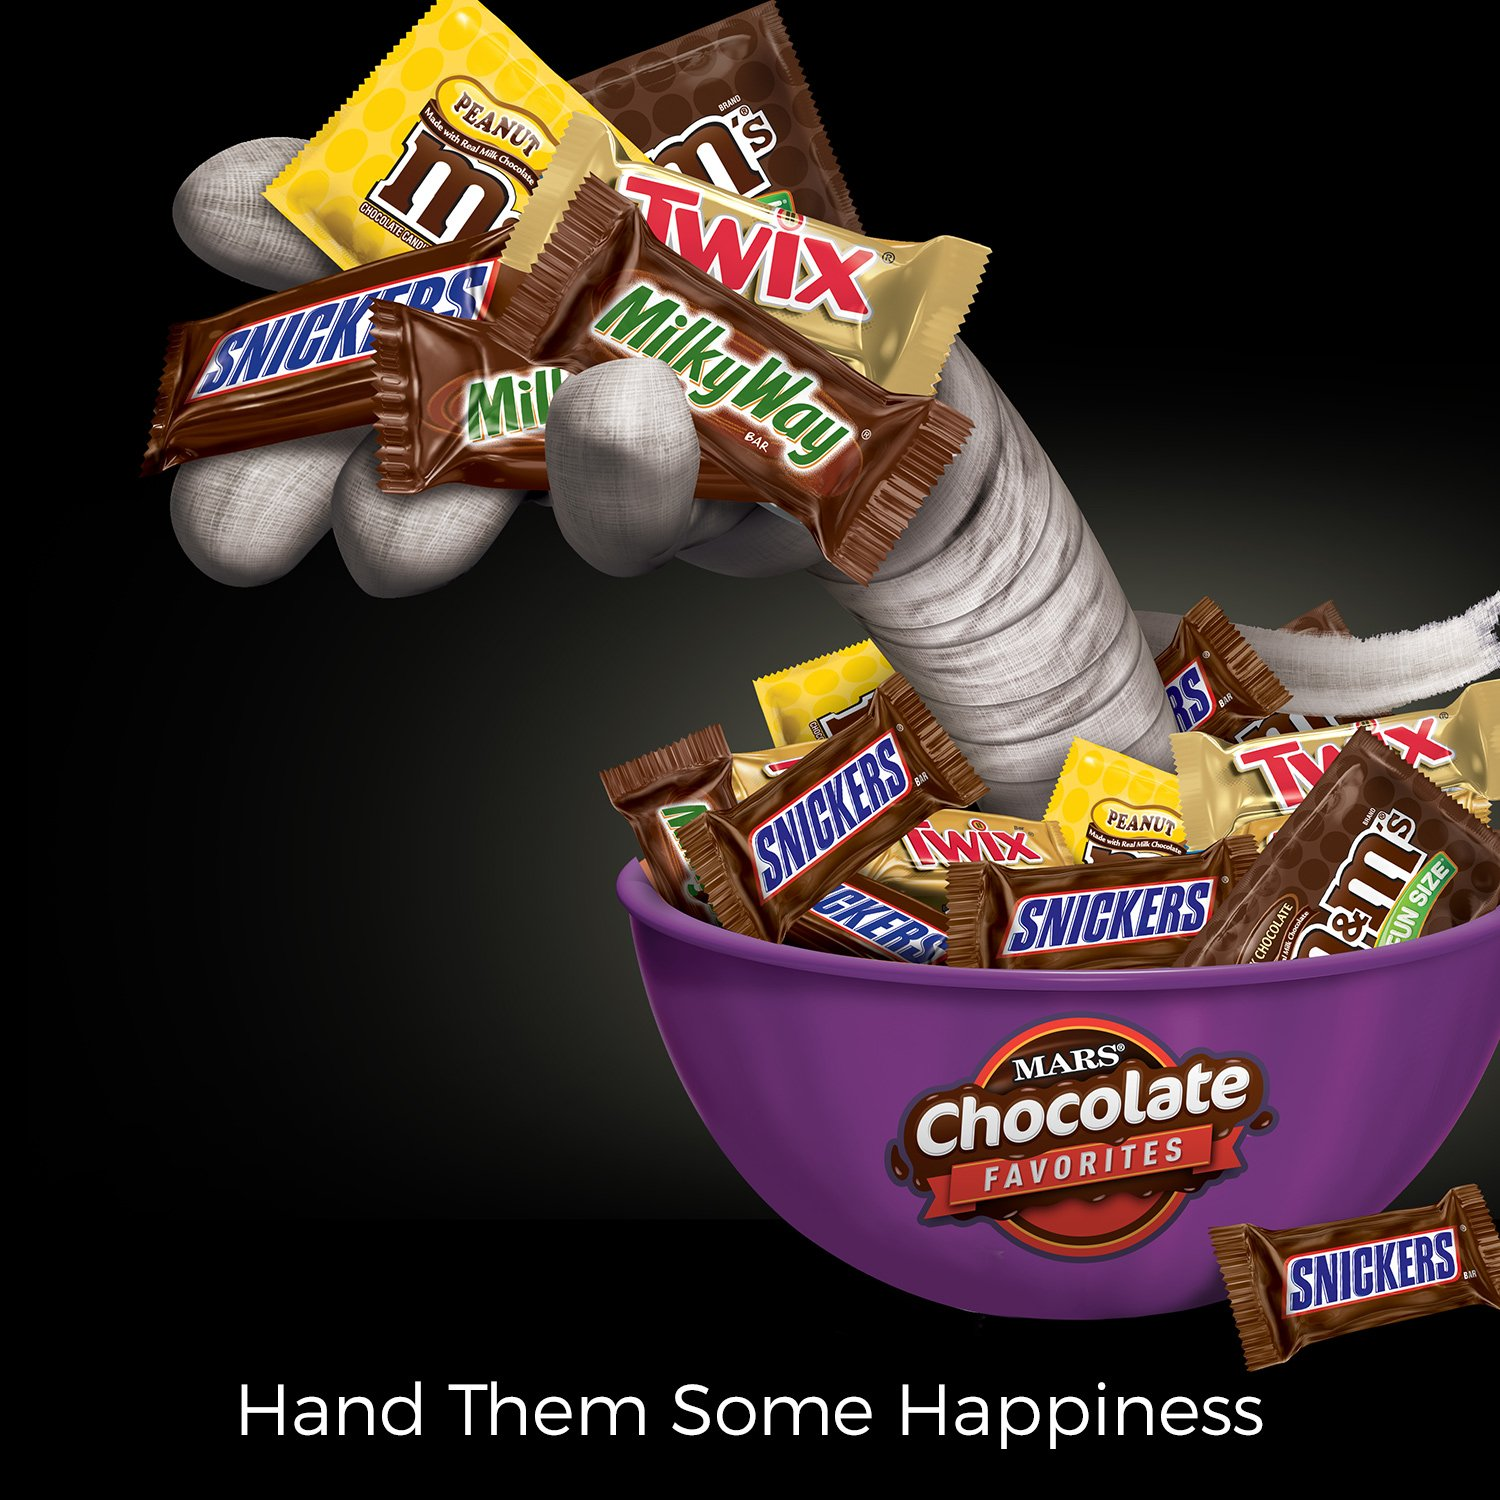 MARS Chocolate Favorites Halloween Candy Bars Variety Mix 69.2-Ounce 135-Piece Bag by Mars (Image #2)